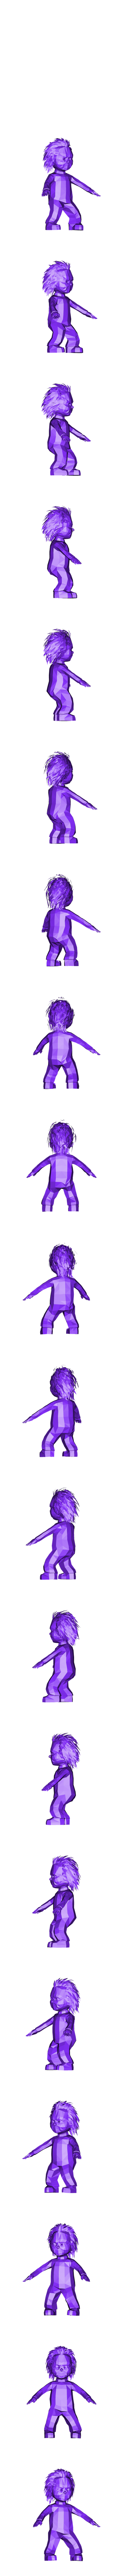 Chucky.obj Download OBJ file chucky • 3D printing design, lisaloo